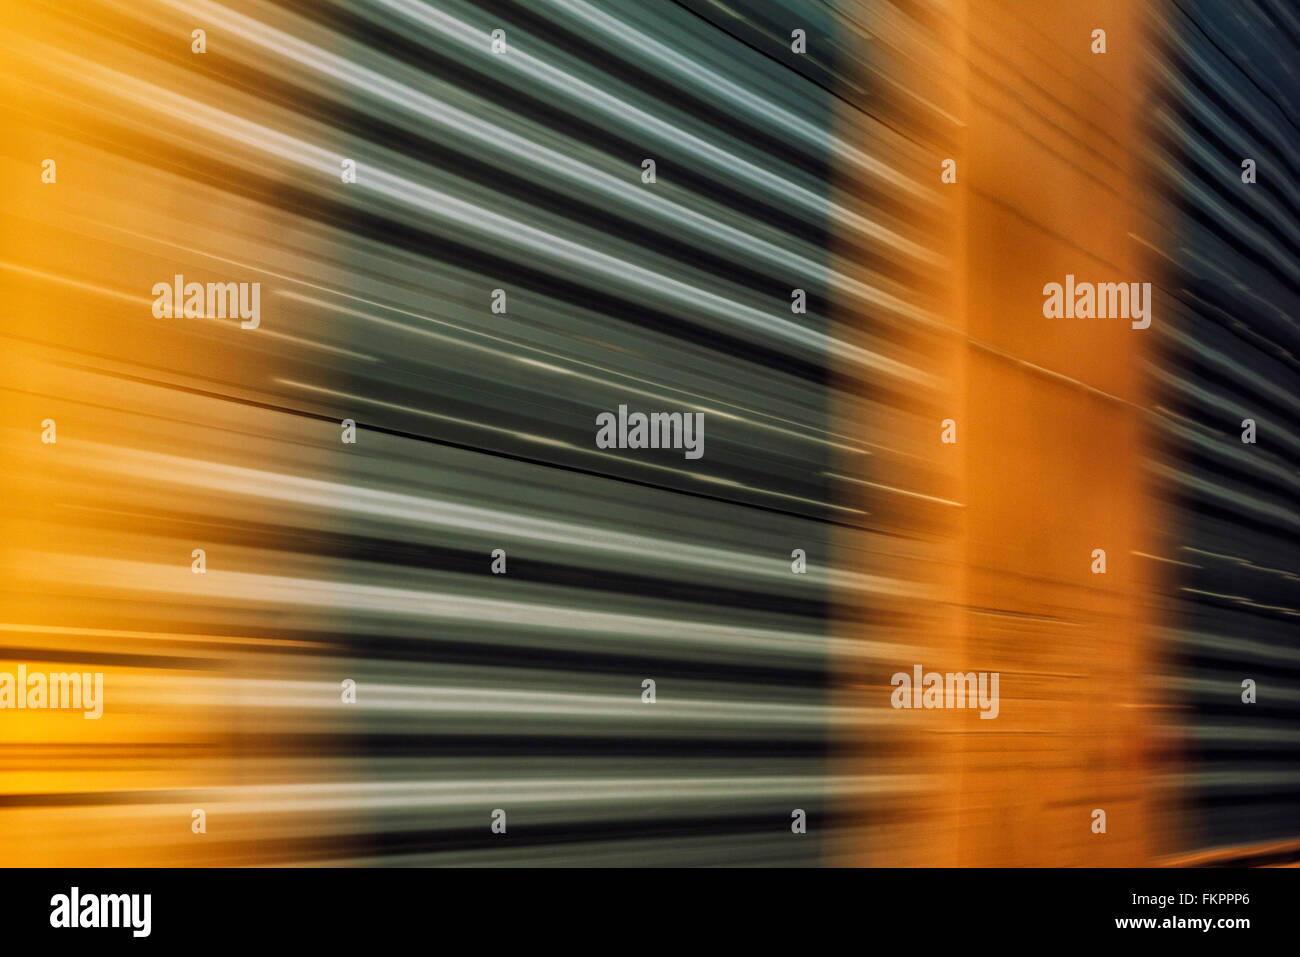 Abstract of train car passing by at rapid speed - Stock Image